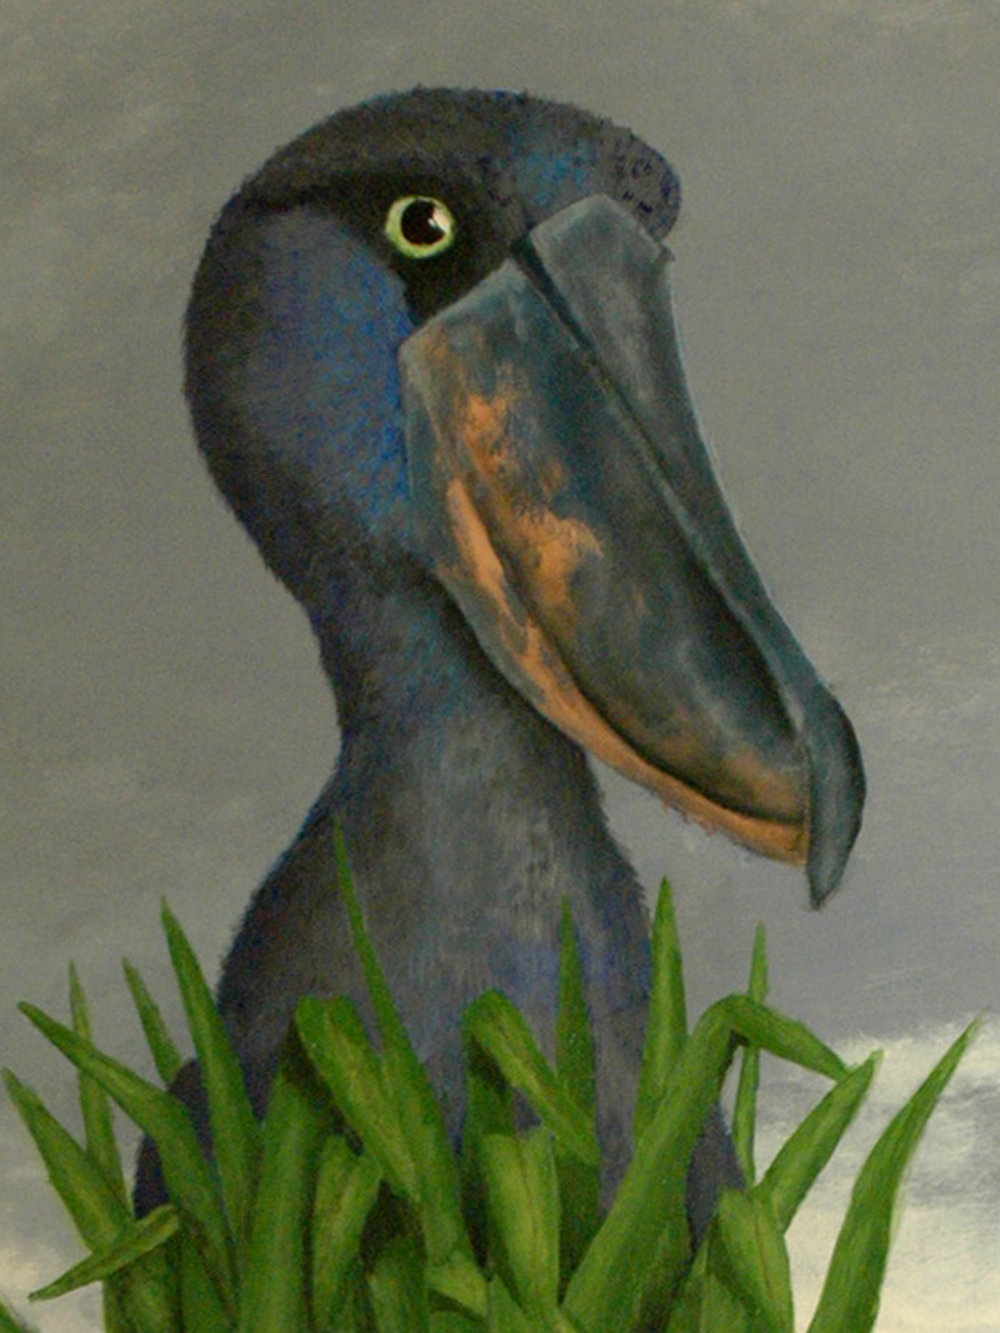 Carolyn_Byers_Shoebill_detail_DO_NOT_USE_WITHOUT_PERMISSION.jpg